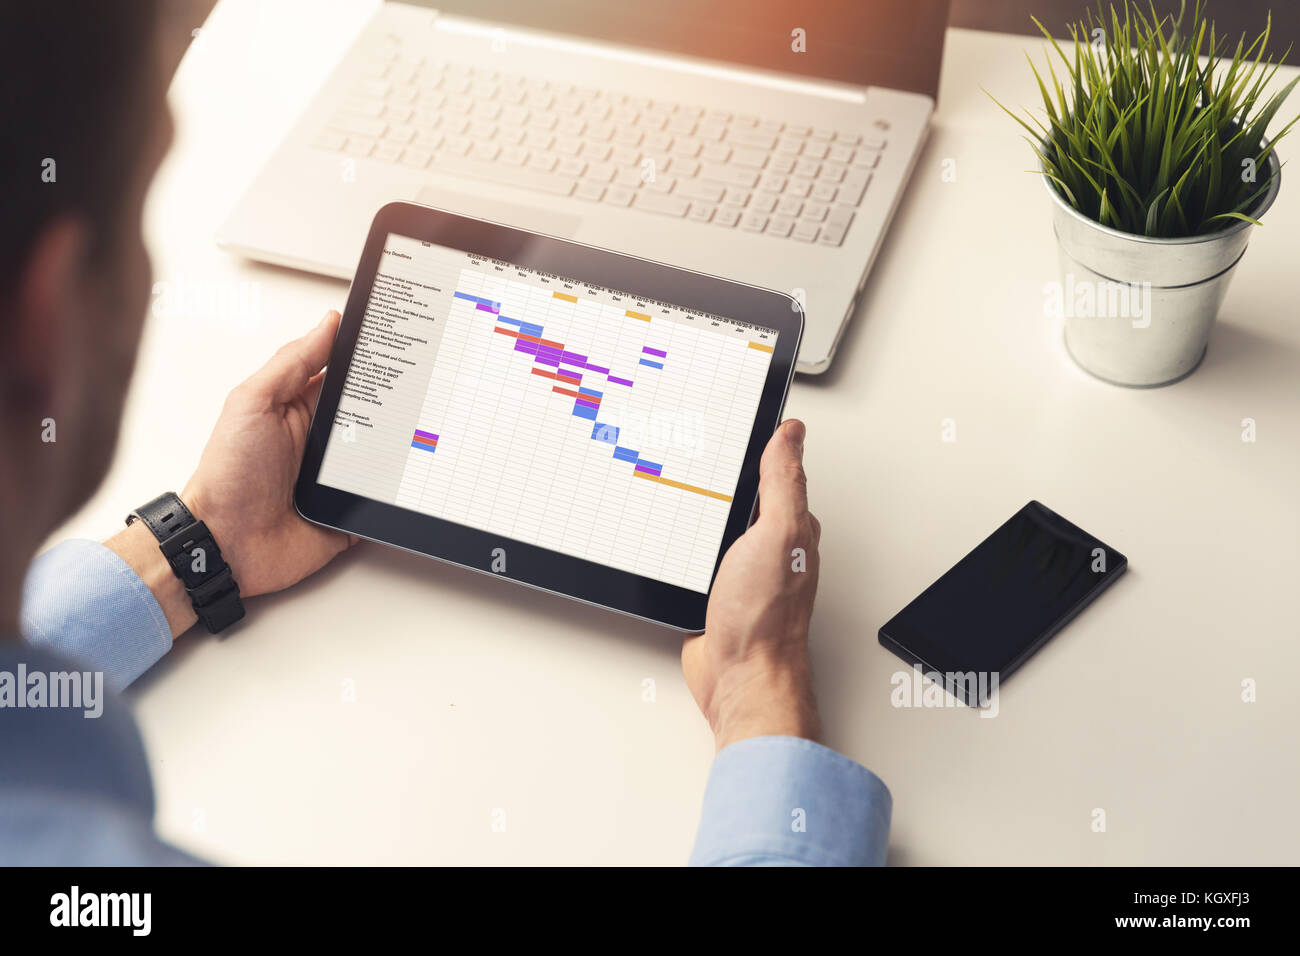 Gantt chart stock photos gantt chart stock images alamy project manager looking at gantt chart on digital tablet in office stock image nvjuhfo Choice Image